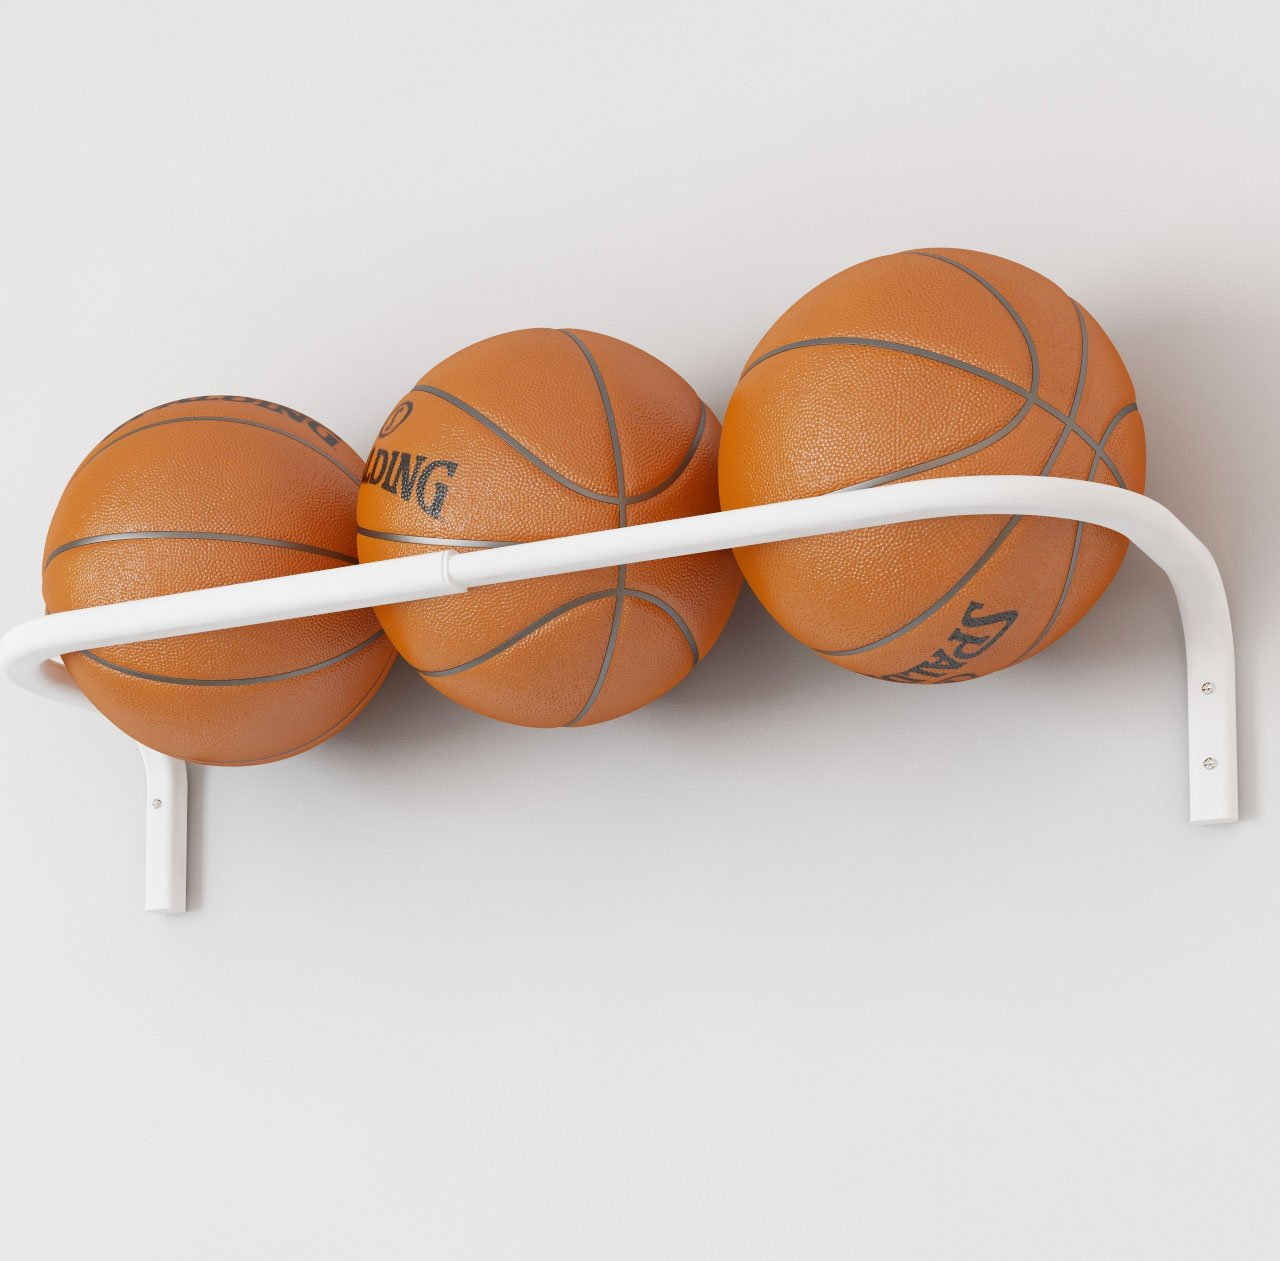 Wall Mount Basketball Ball Rack Storage Bar Adjustable Fits up to 3 Balls BGT